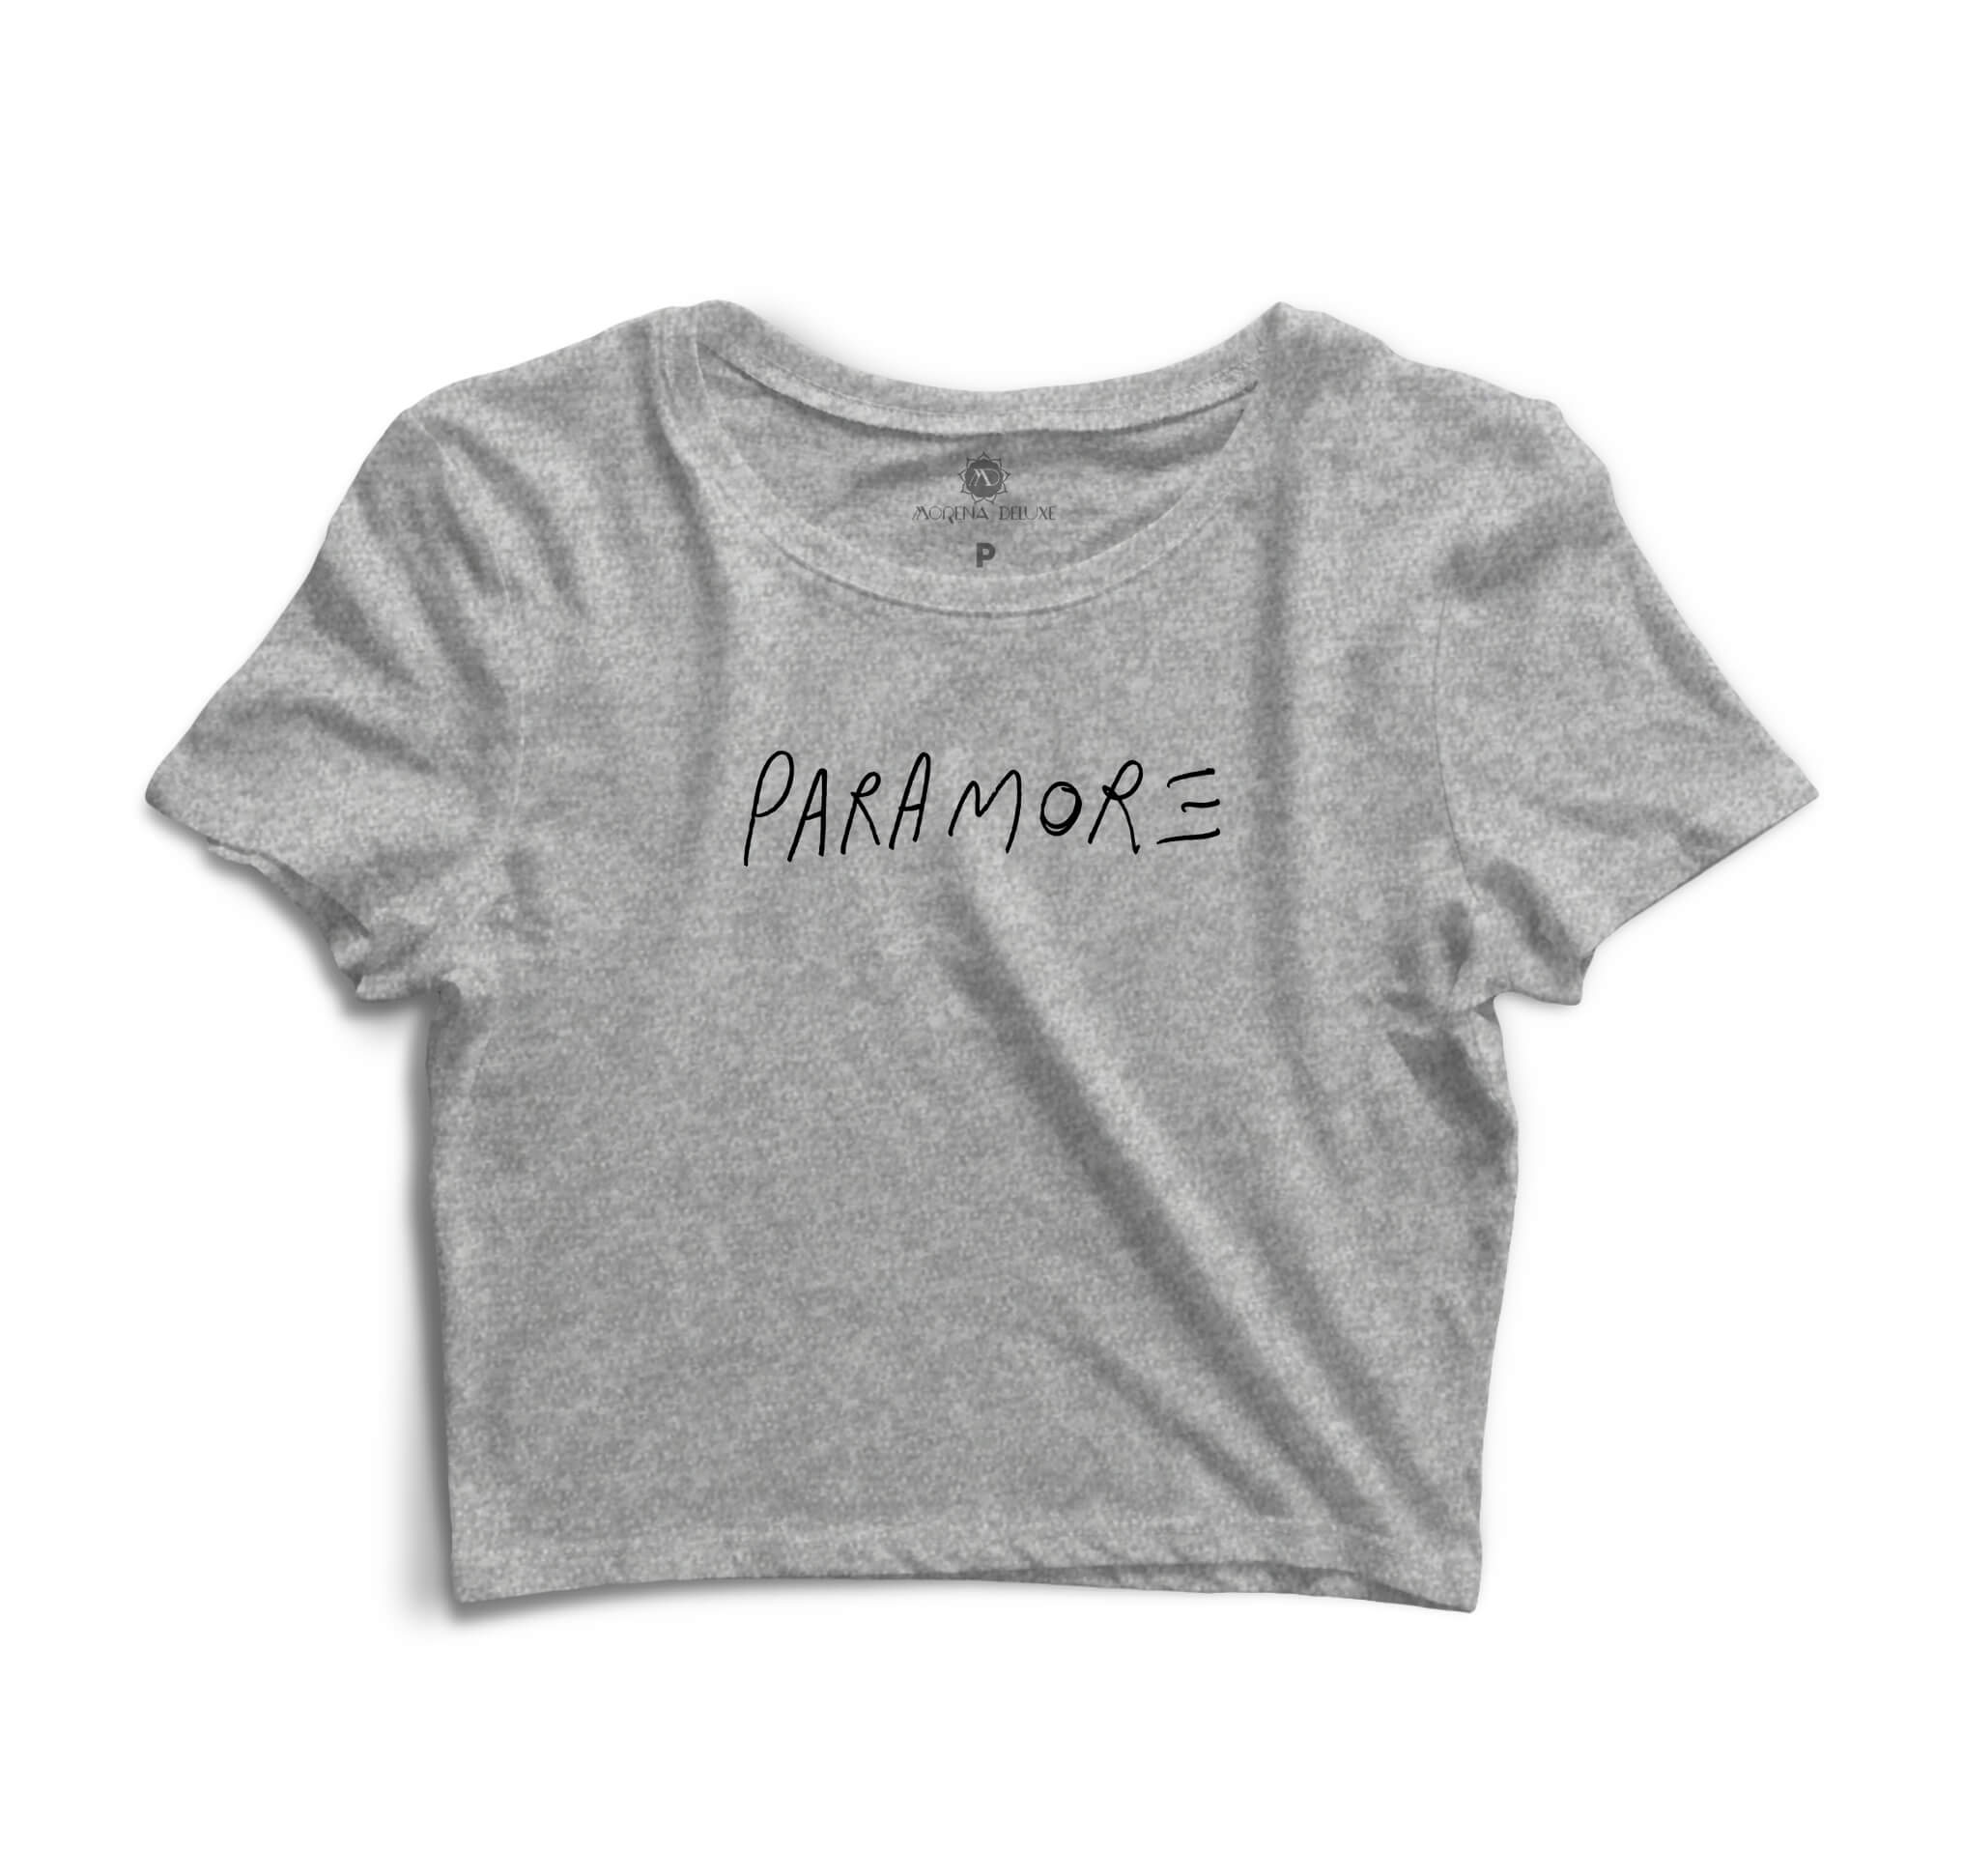 Cropped Morena Deluxe Paramore Cinza